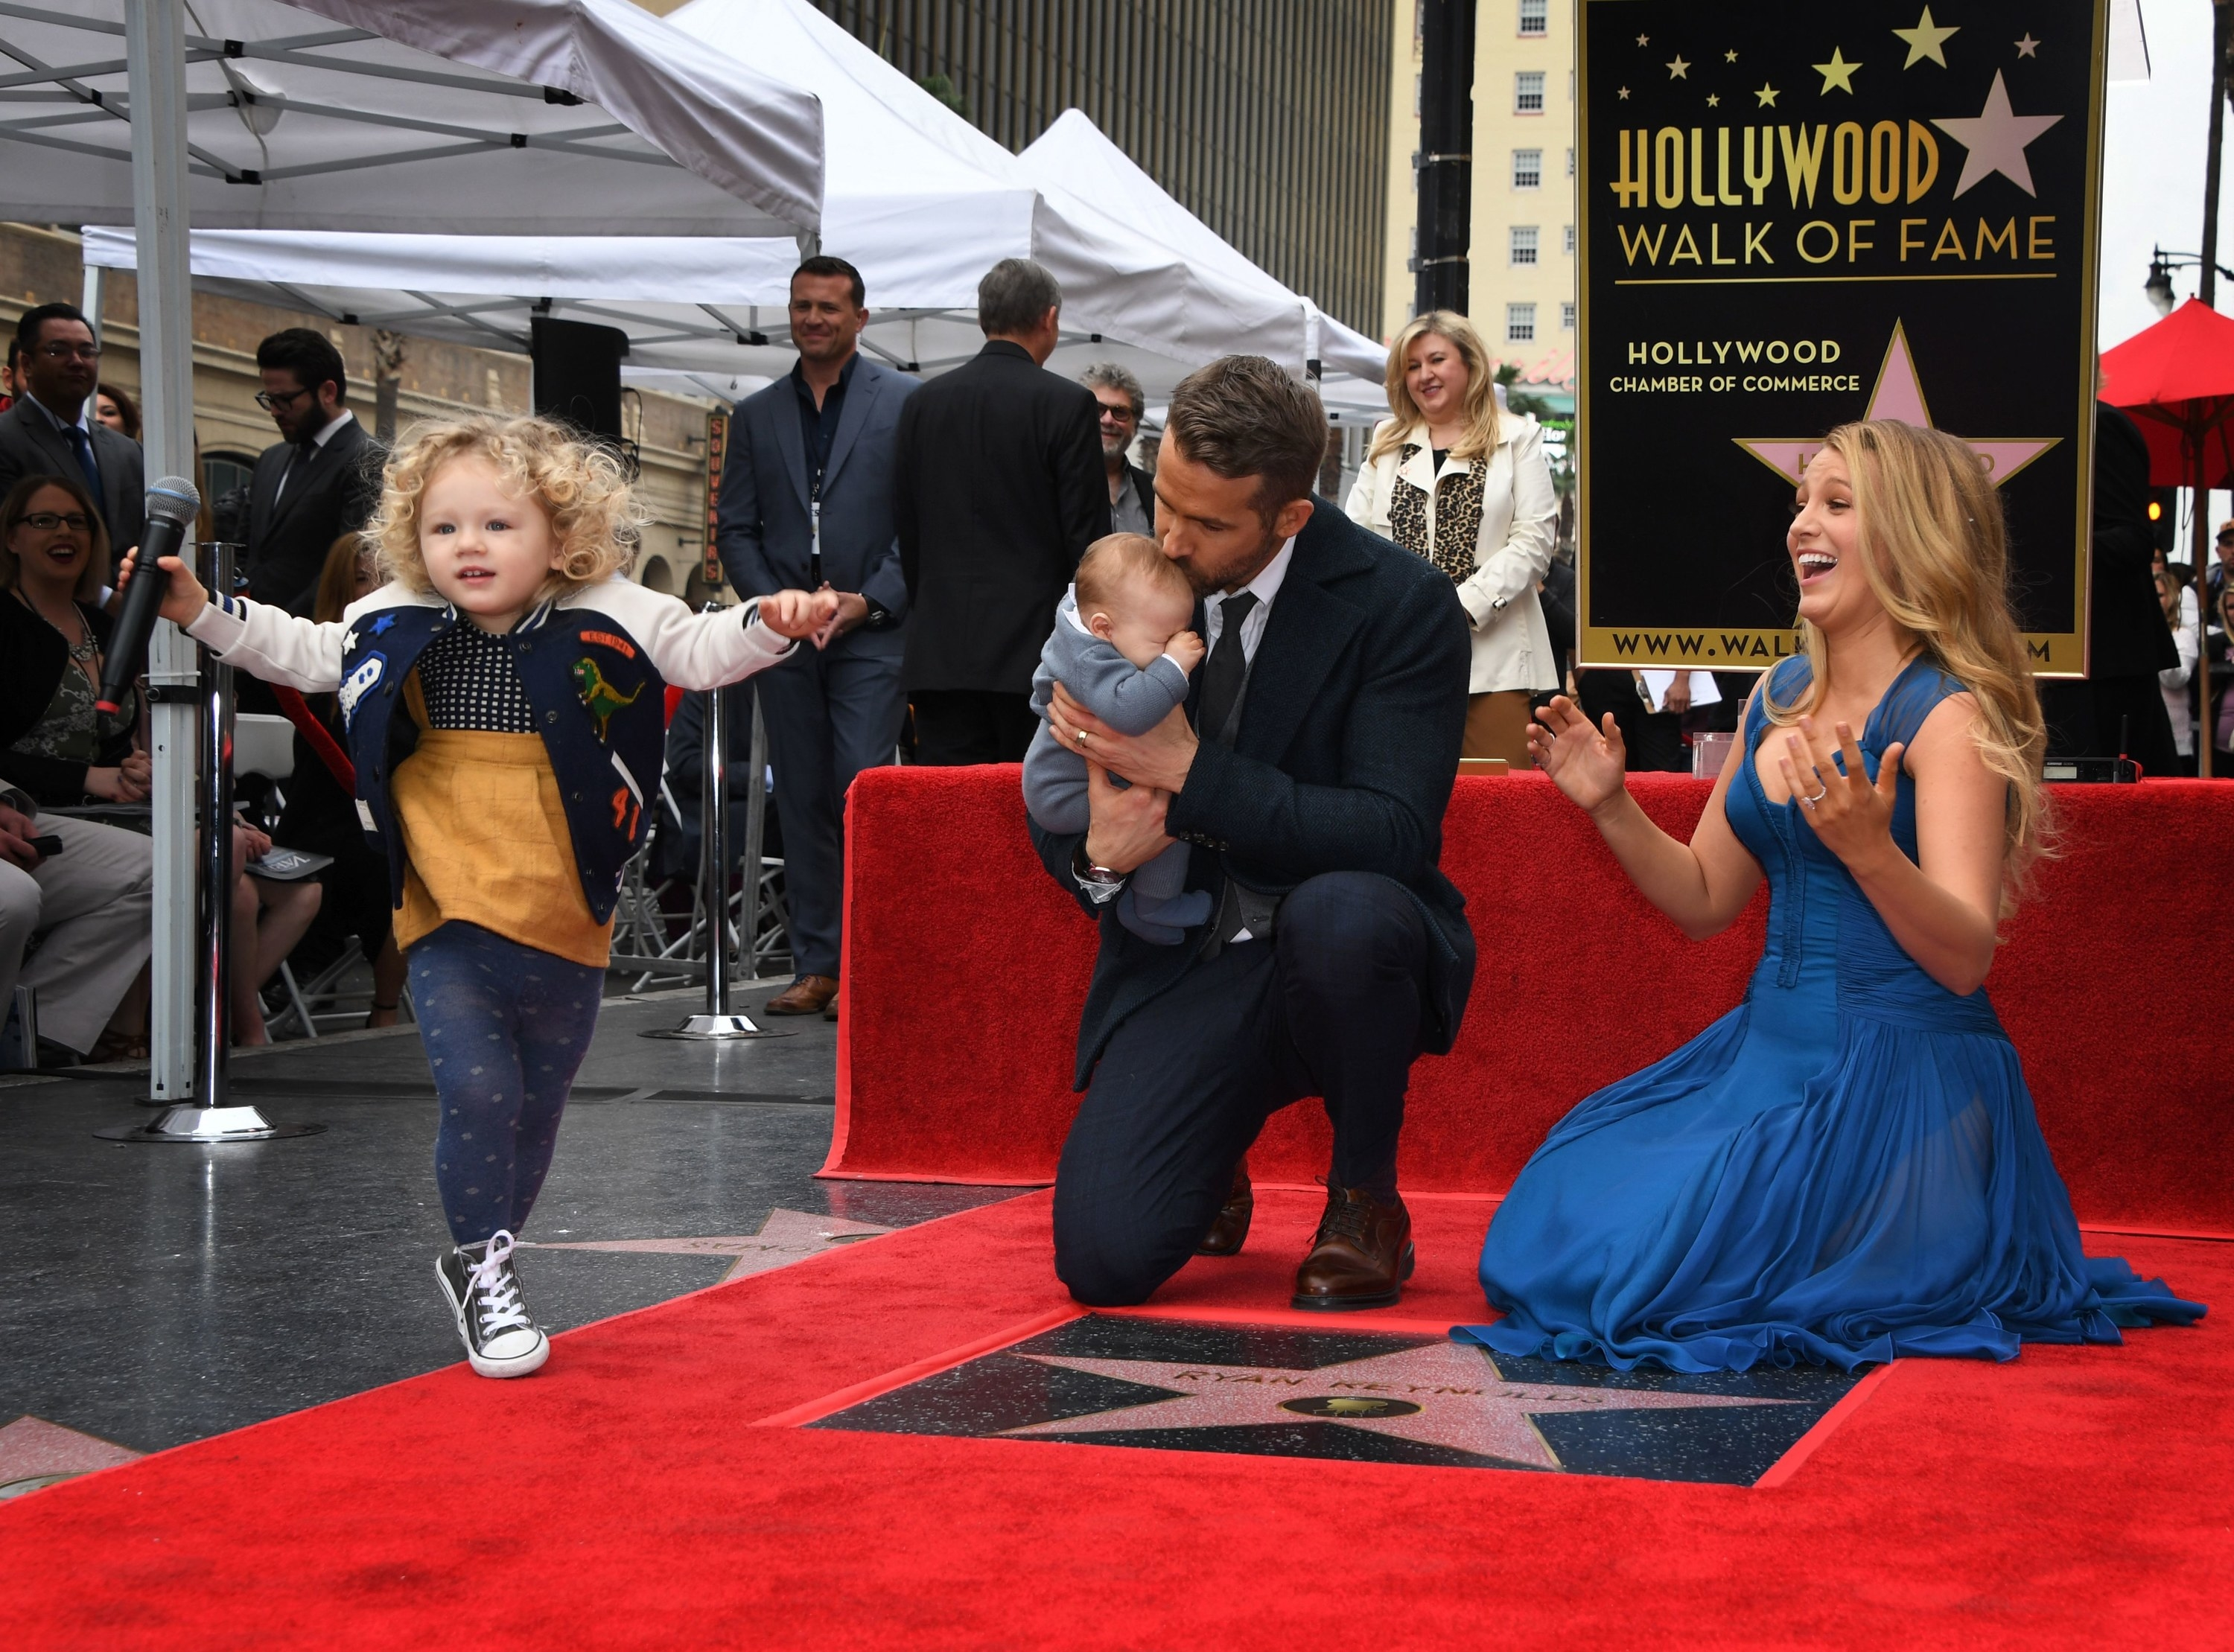 Actor Ryan Reynolds (C) kisses his unnamed new baby as his wife Blake Lively and daughter James look on during the Deadpool actors Hollywood Walk of Fame ceremony in Hollywood, California on December 15, 2016